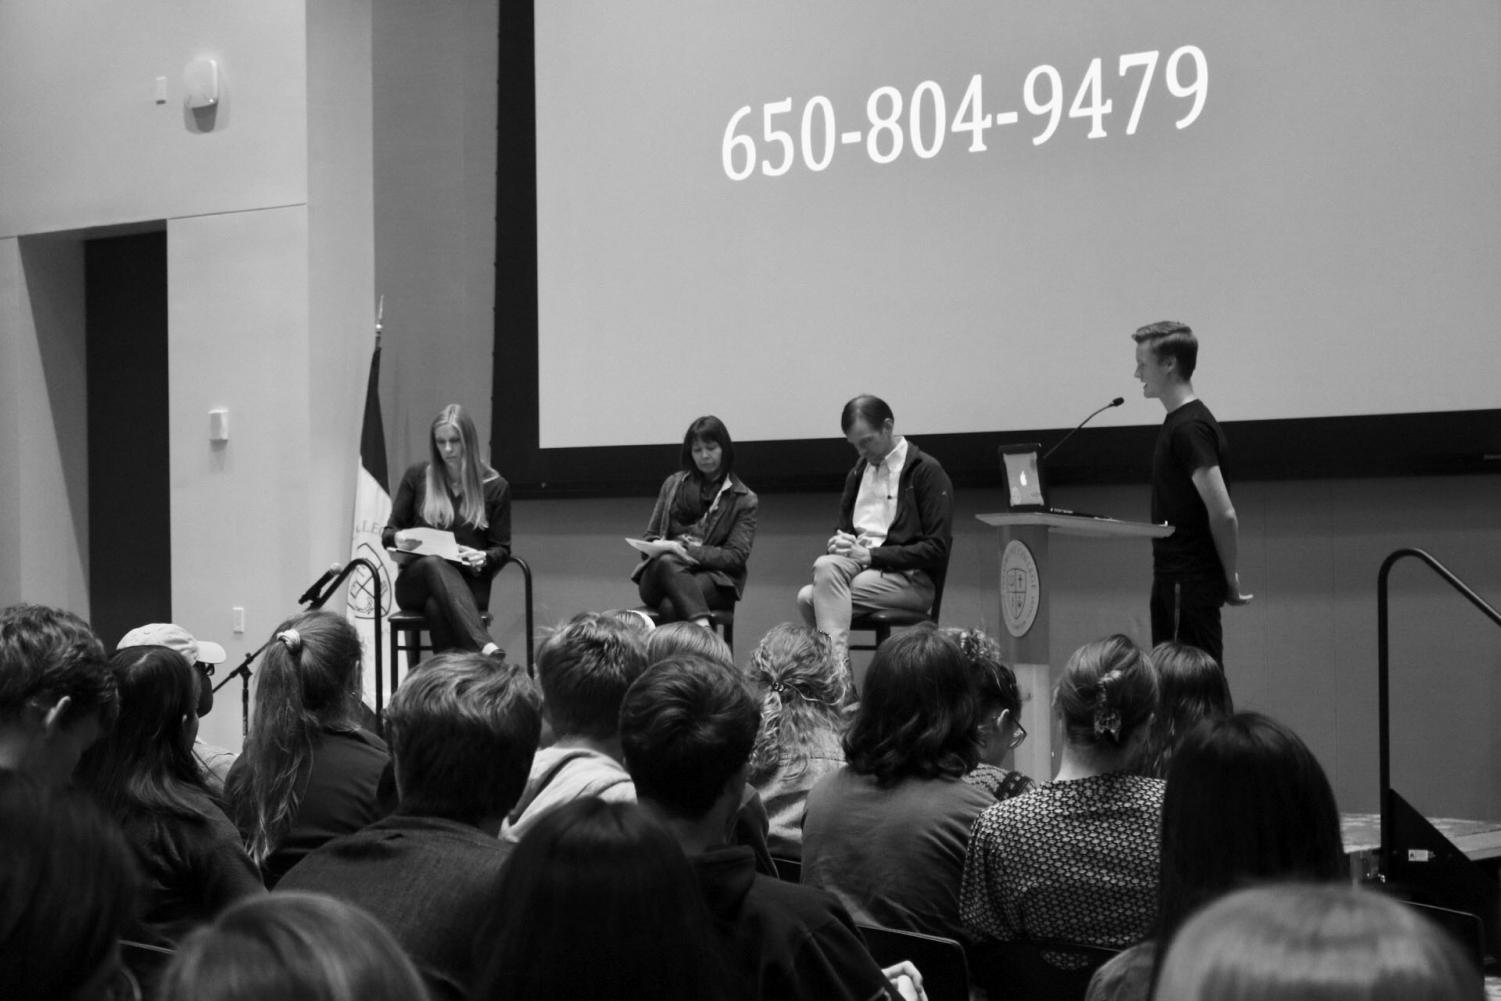 Faculty panel members Katherine Bryant, Heather Keaney, and Alister Chapman share their thoughts on Hong Kong protests.